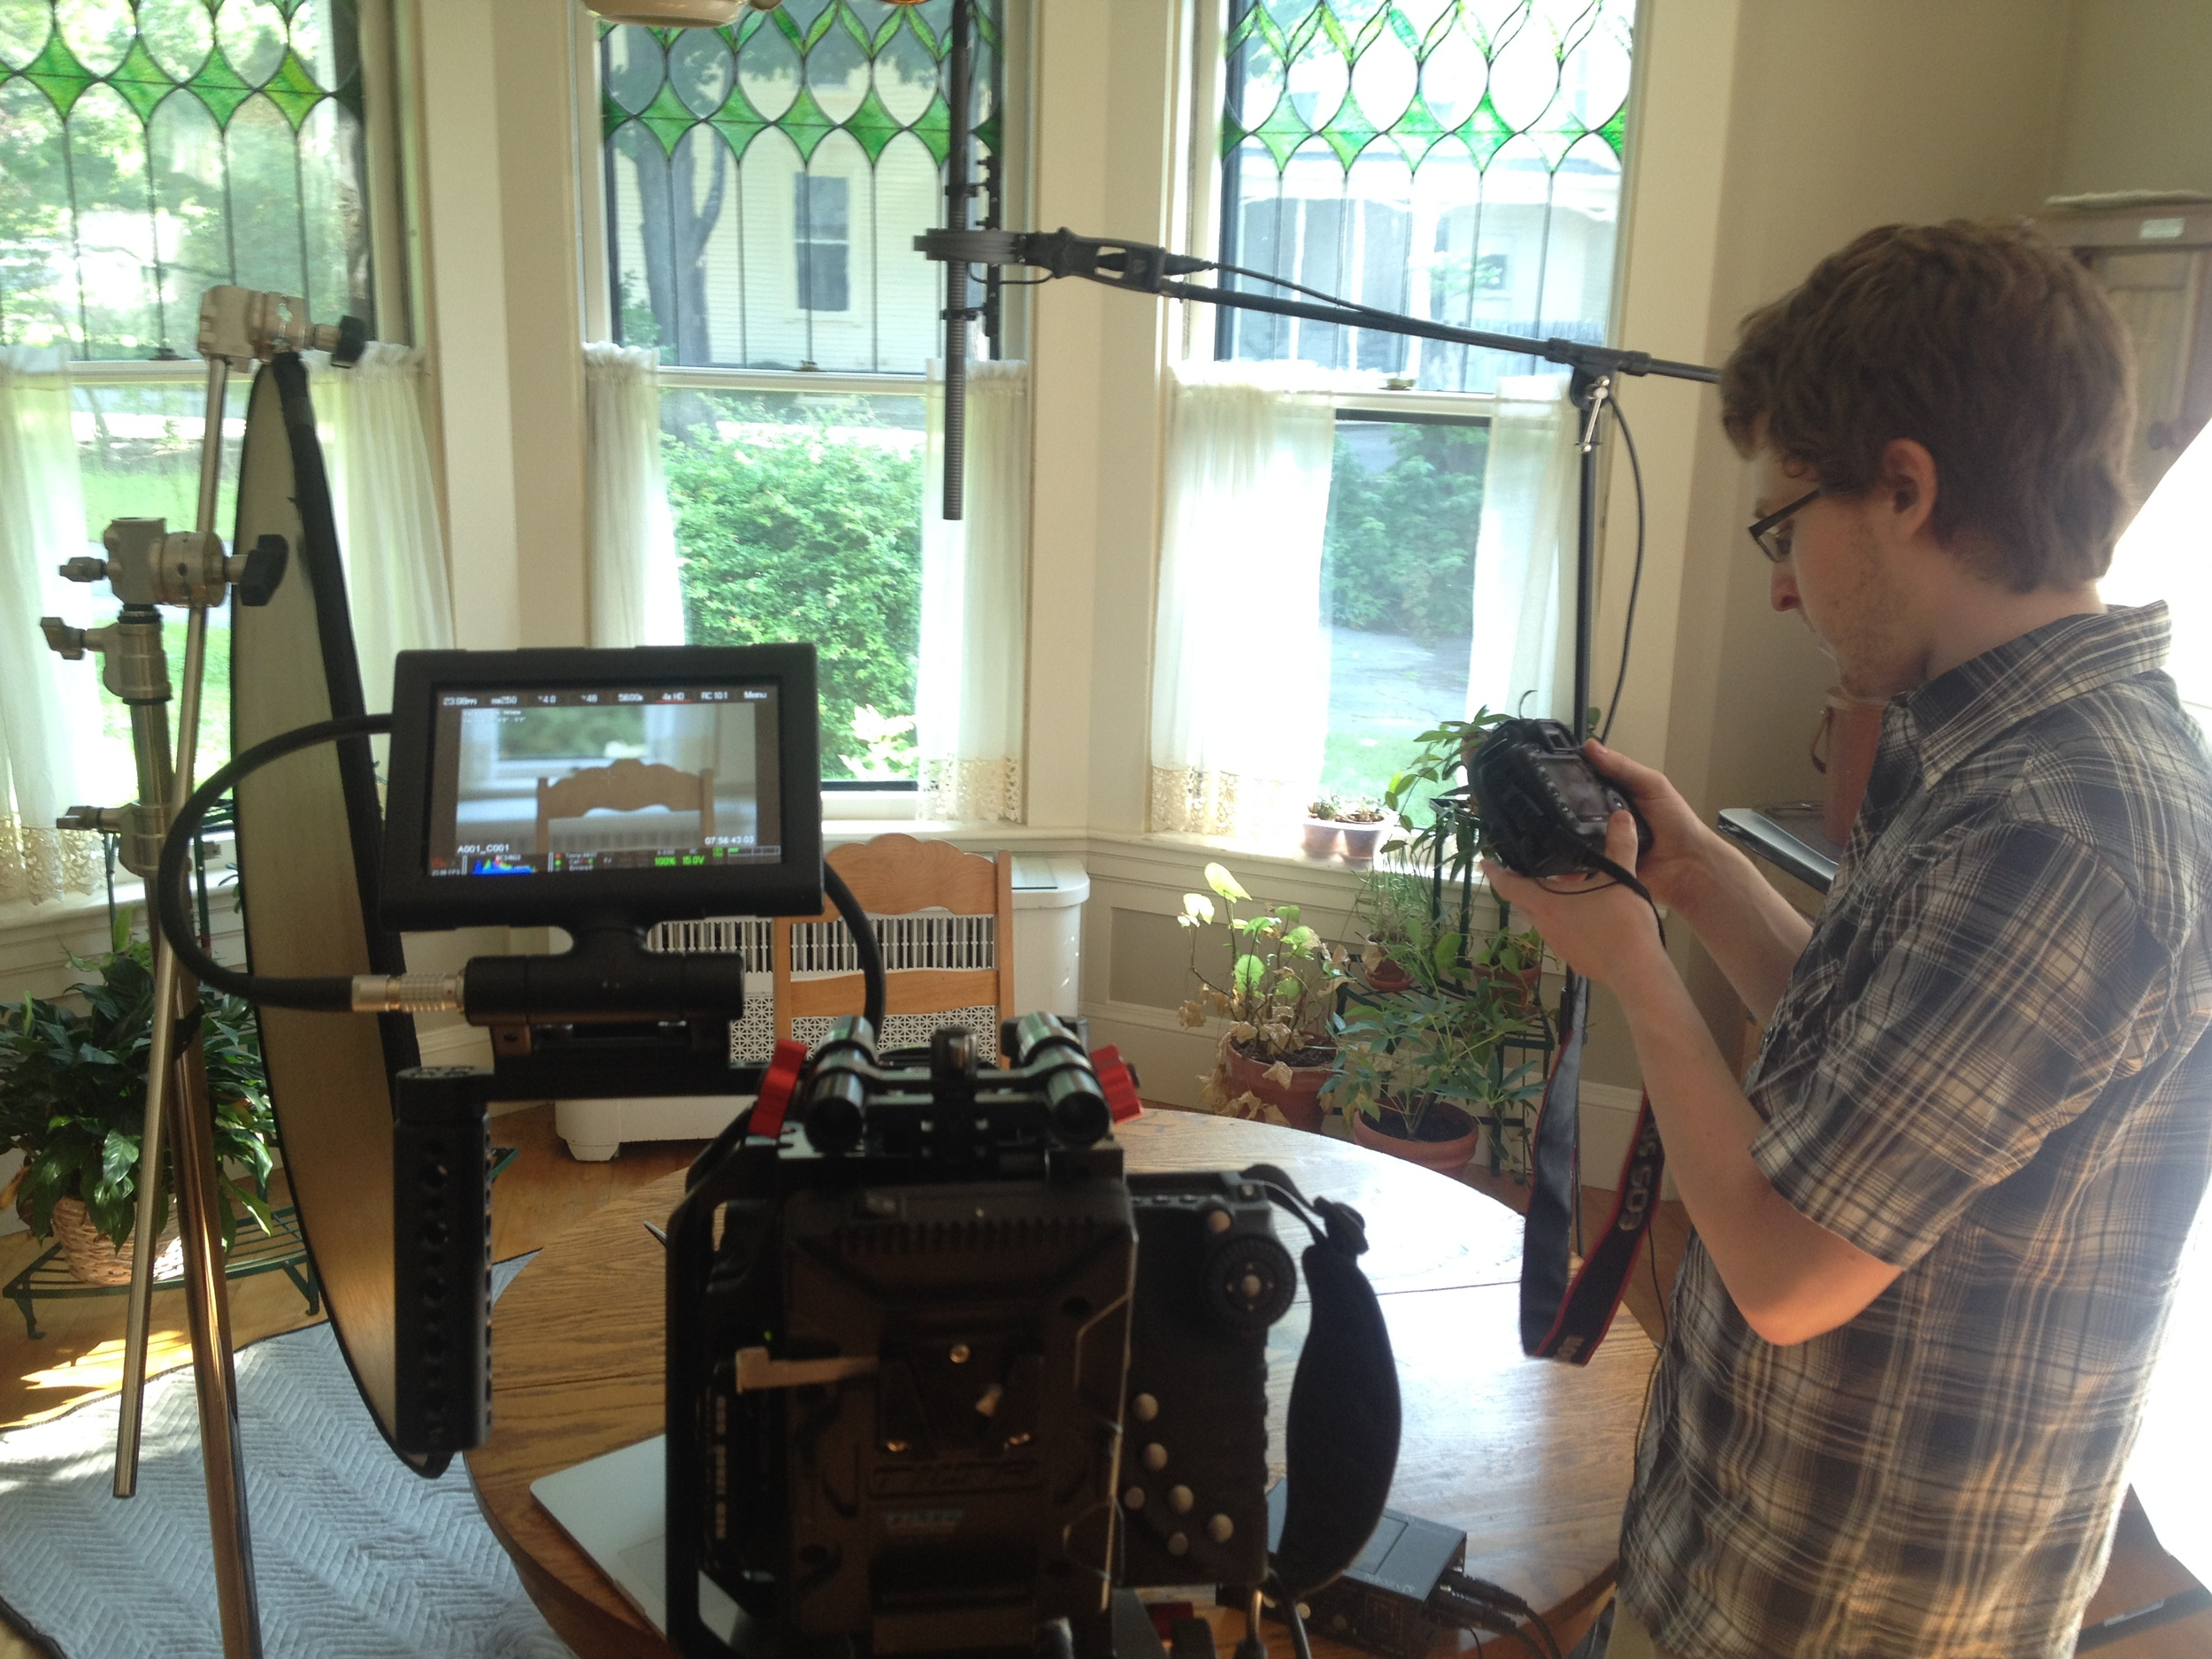 Setup for first location of the day, awaiting the interviewee.